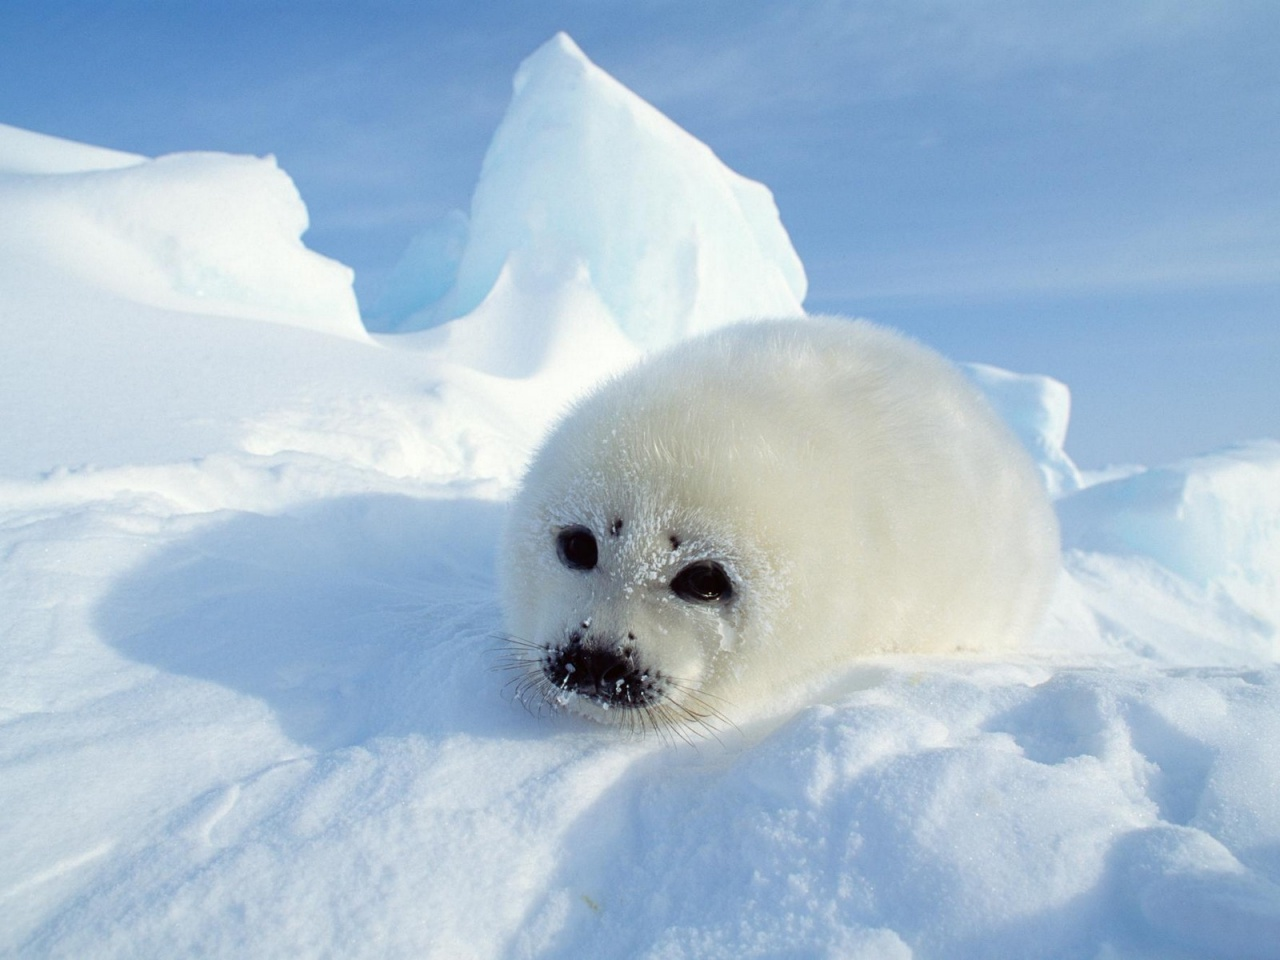 Harp seal pup - harp seal, harp seal wallpaper, harp seal wallpapers